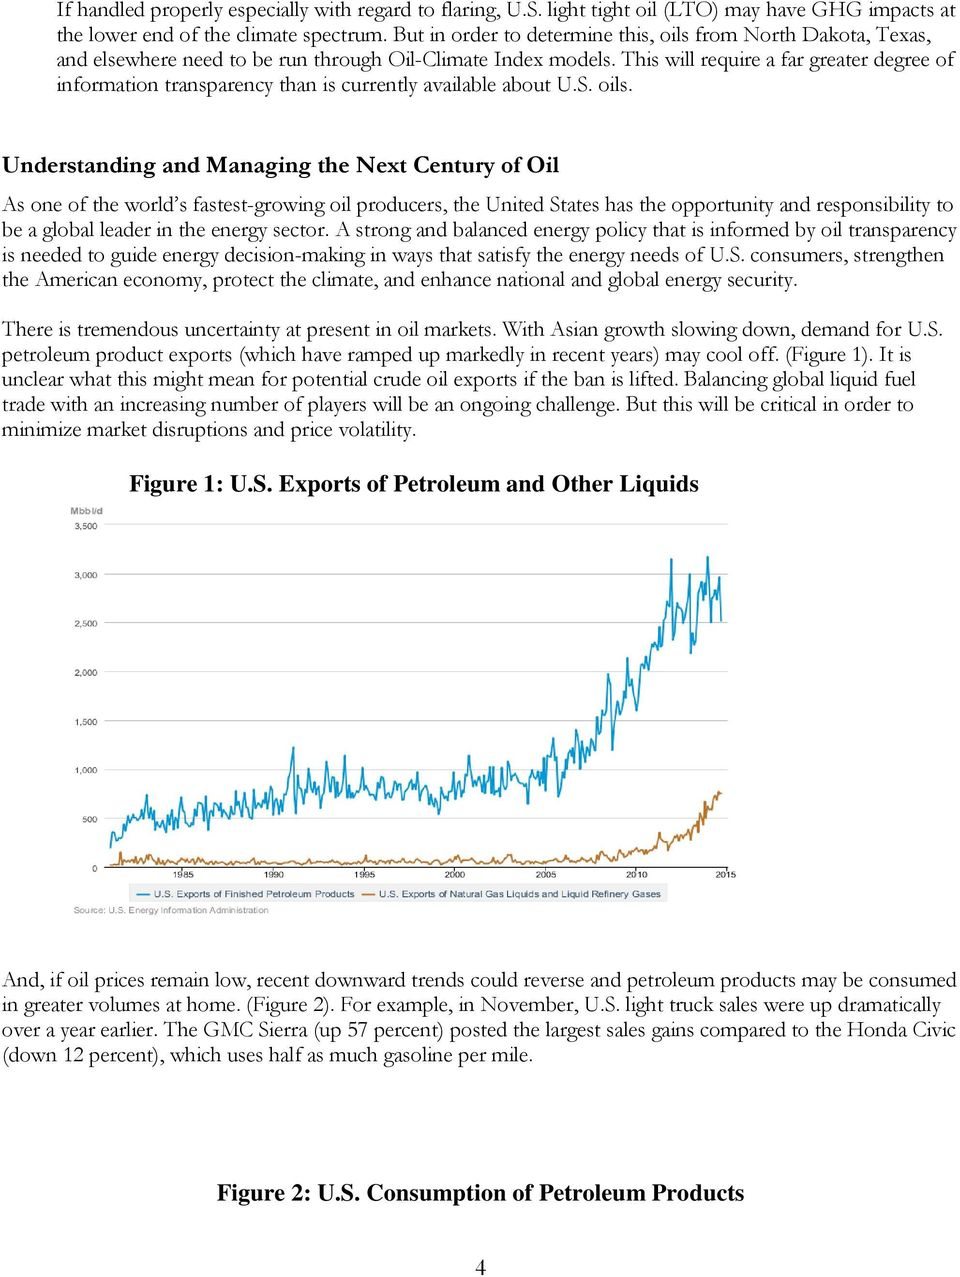 This will require a far greater degree of information transparency than is currently available about U.S. oils.